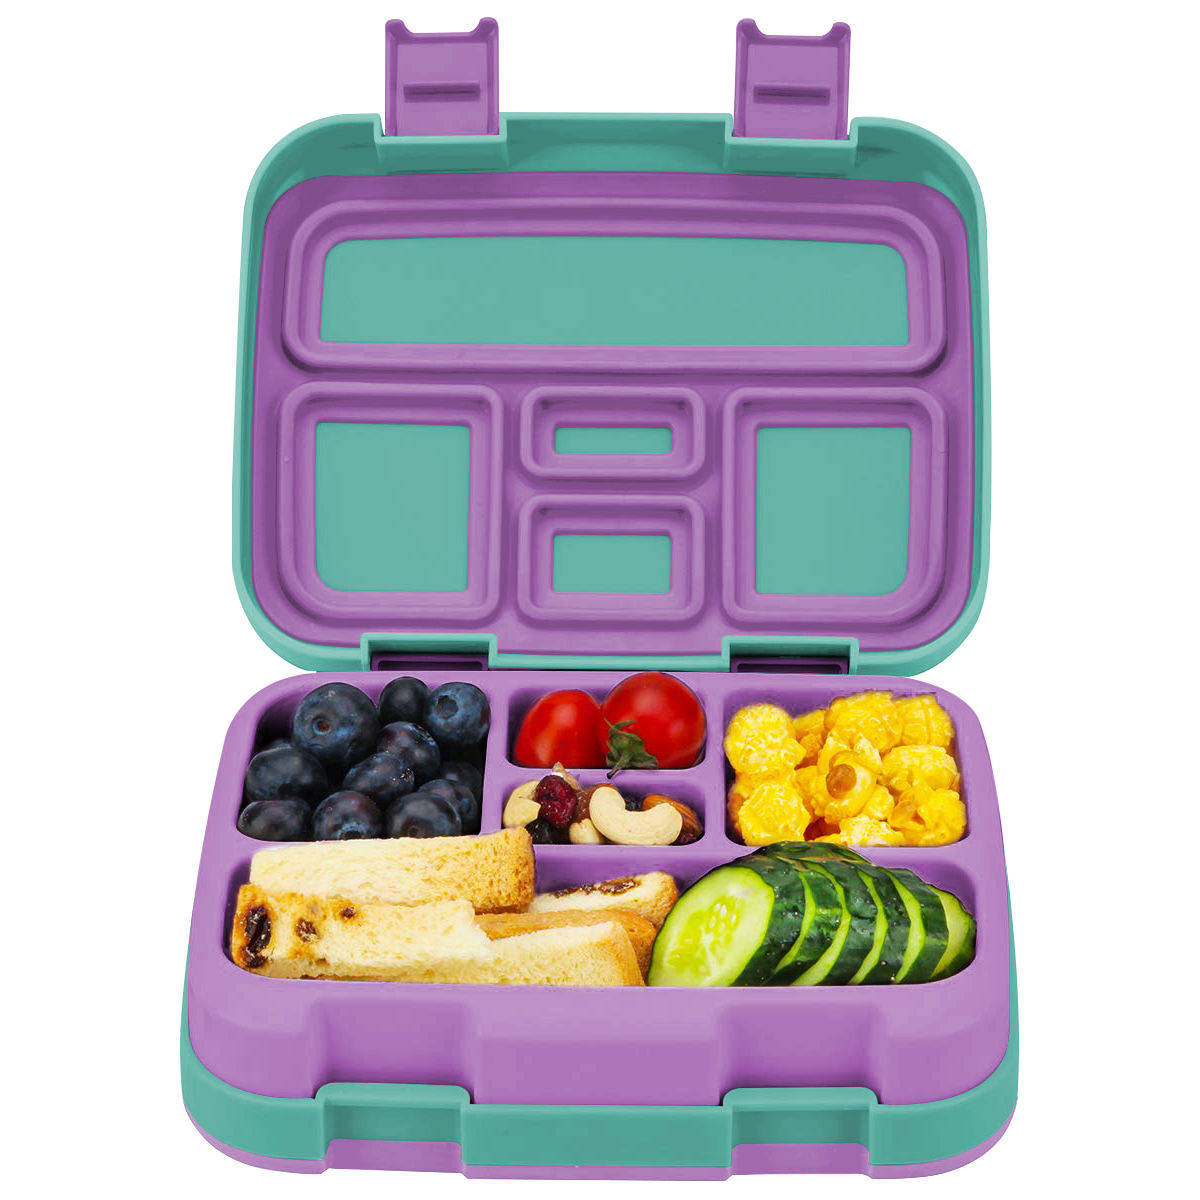 Square Bento Boxes Bento Lunch Box Children's Bpa Free Leakproof Fruit Food School Bento Bulk Eco Lunch Boxes For Kids